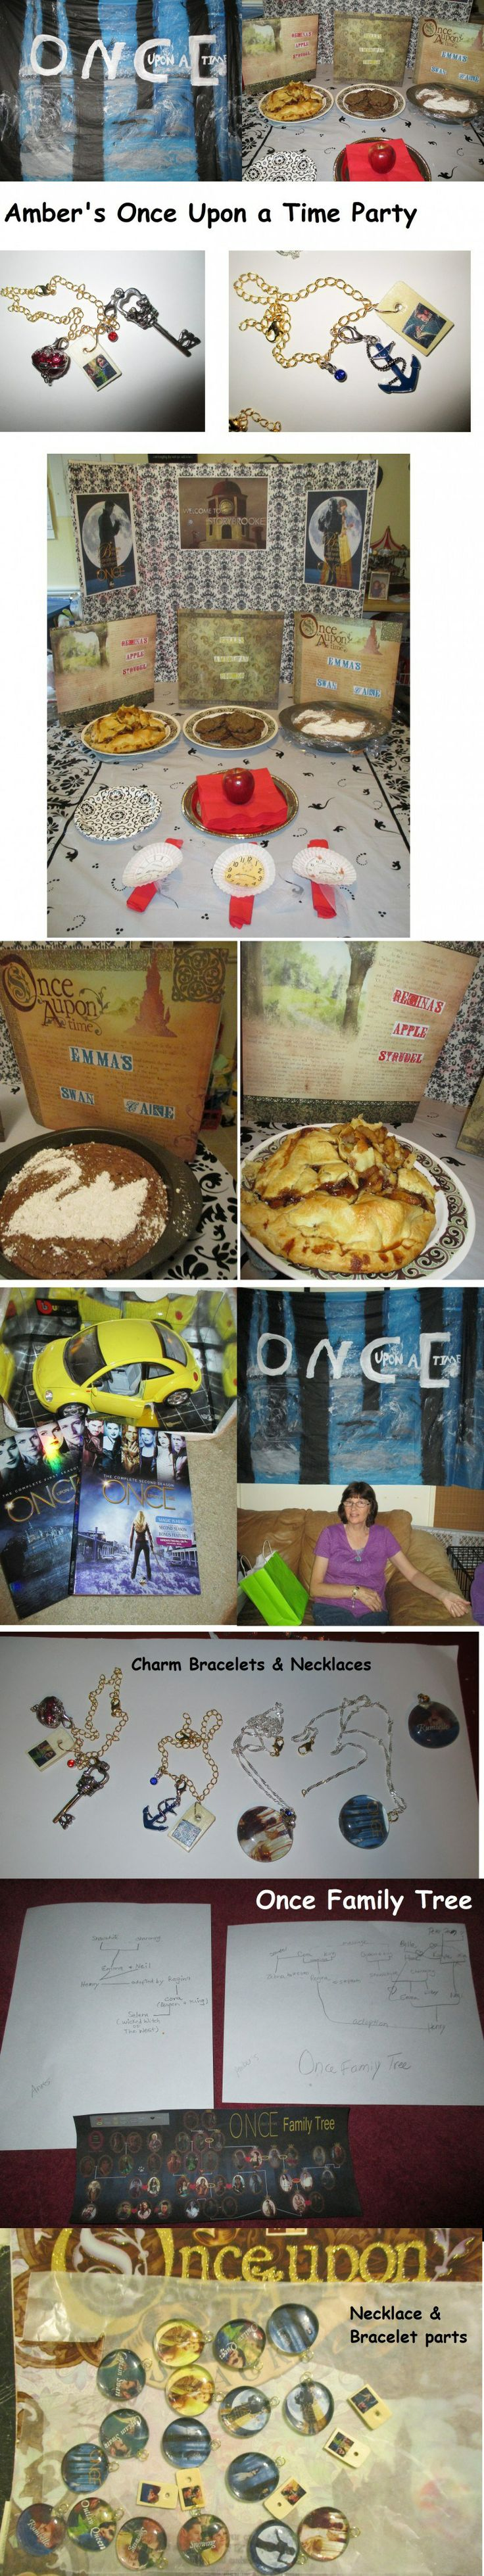 Mom and I celebrate as we watch ABC's Once Upon a Time season 3 finale. Come join our Once party! We've got food and fun! On Amber Dover's blog